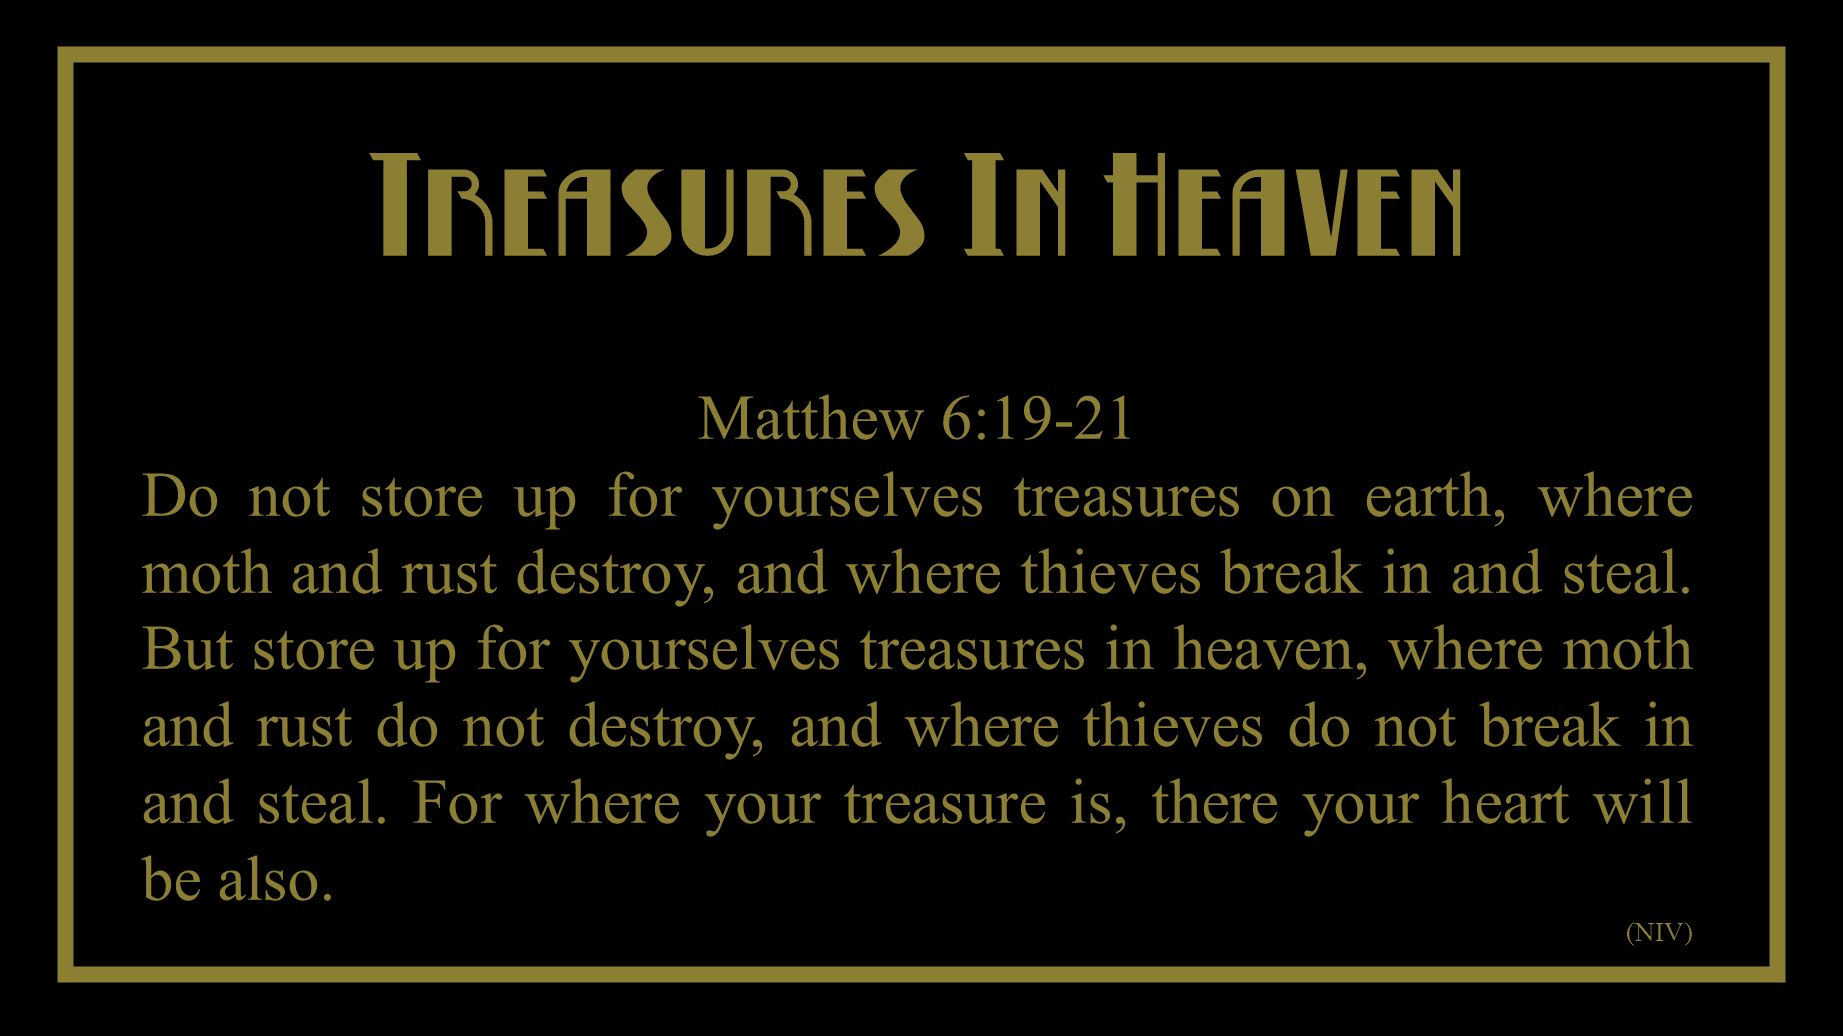 You Cant Take It With You Treasures In Heaven Matthew 6:19-21 Do not store up for yourselves treasures on earth, where moth and rust destroy, and where thieves break in and steal.